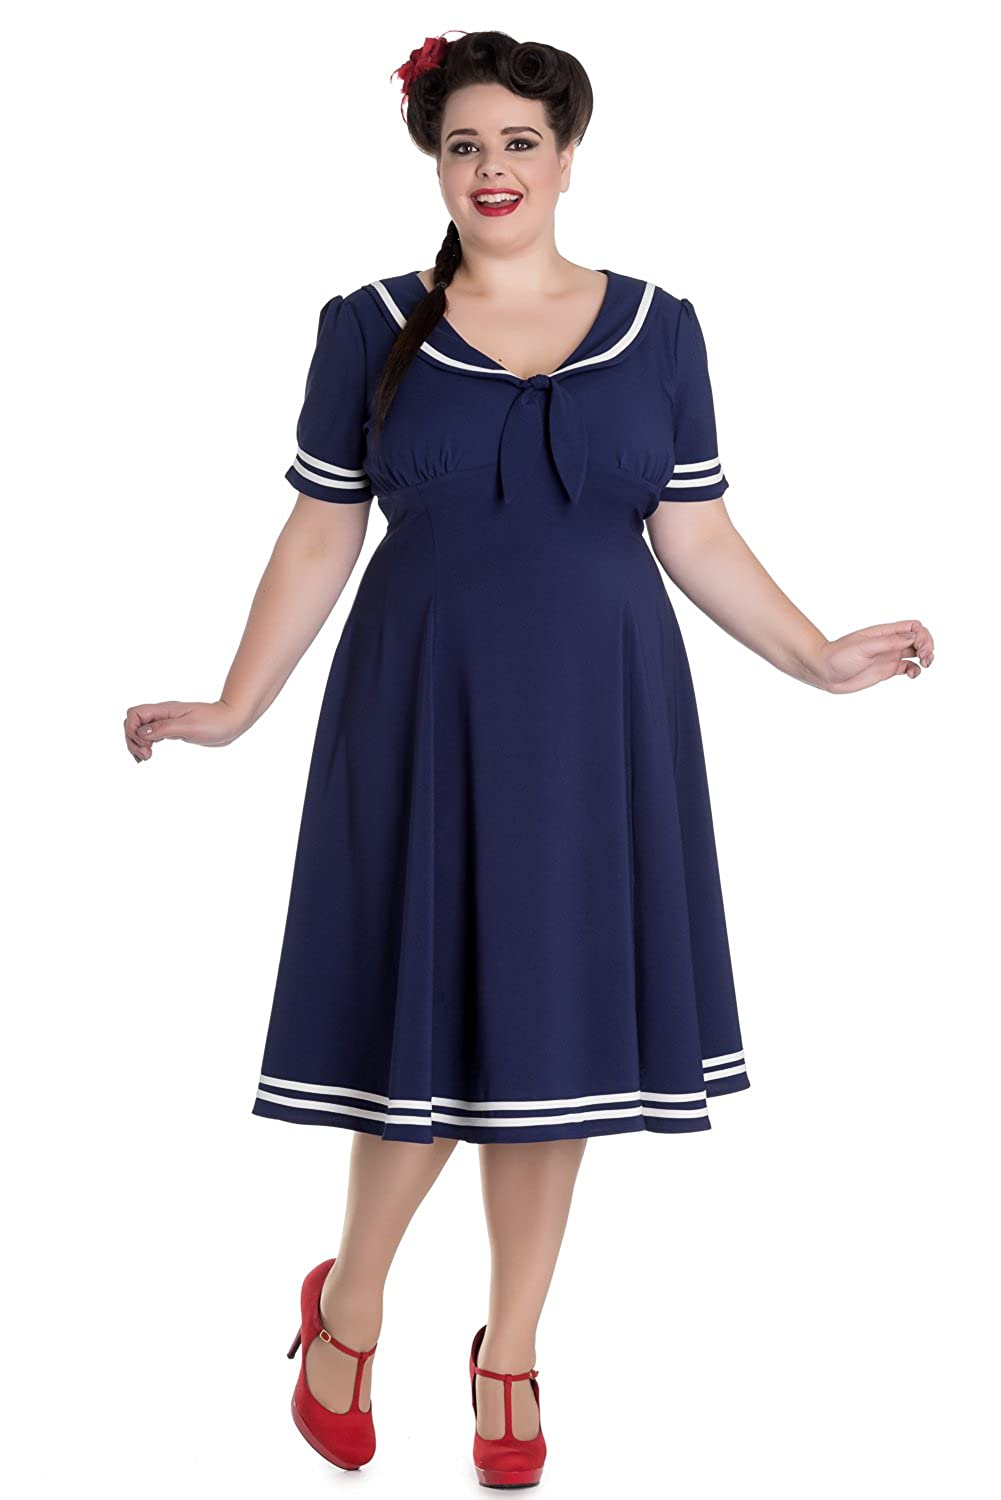 2849bd1d7ec6a Hell Bunny Nautical Navy Sailor with Bow tie Ambleside Dress at Amazon  Women s Clothing store